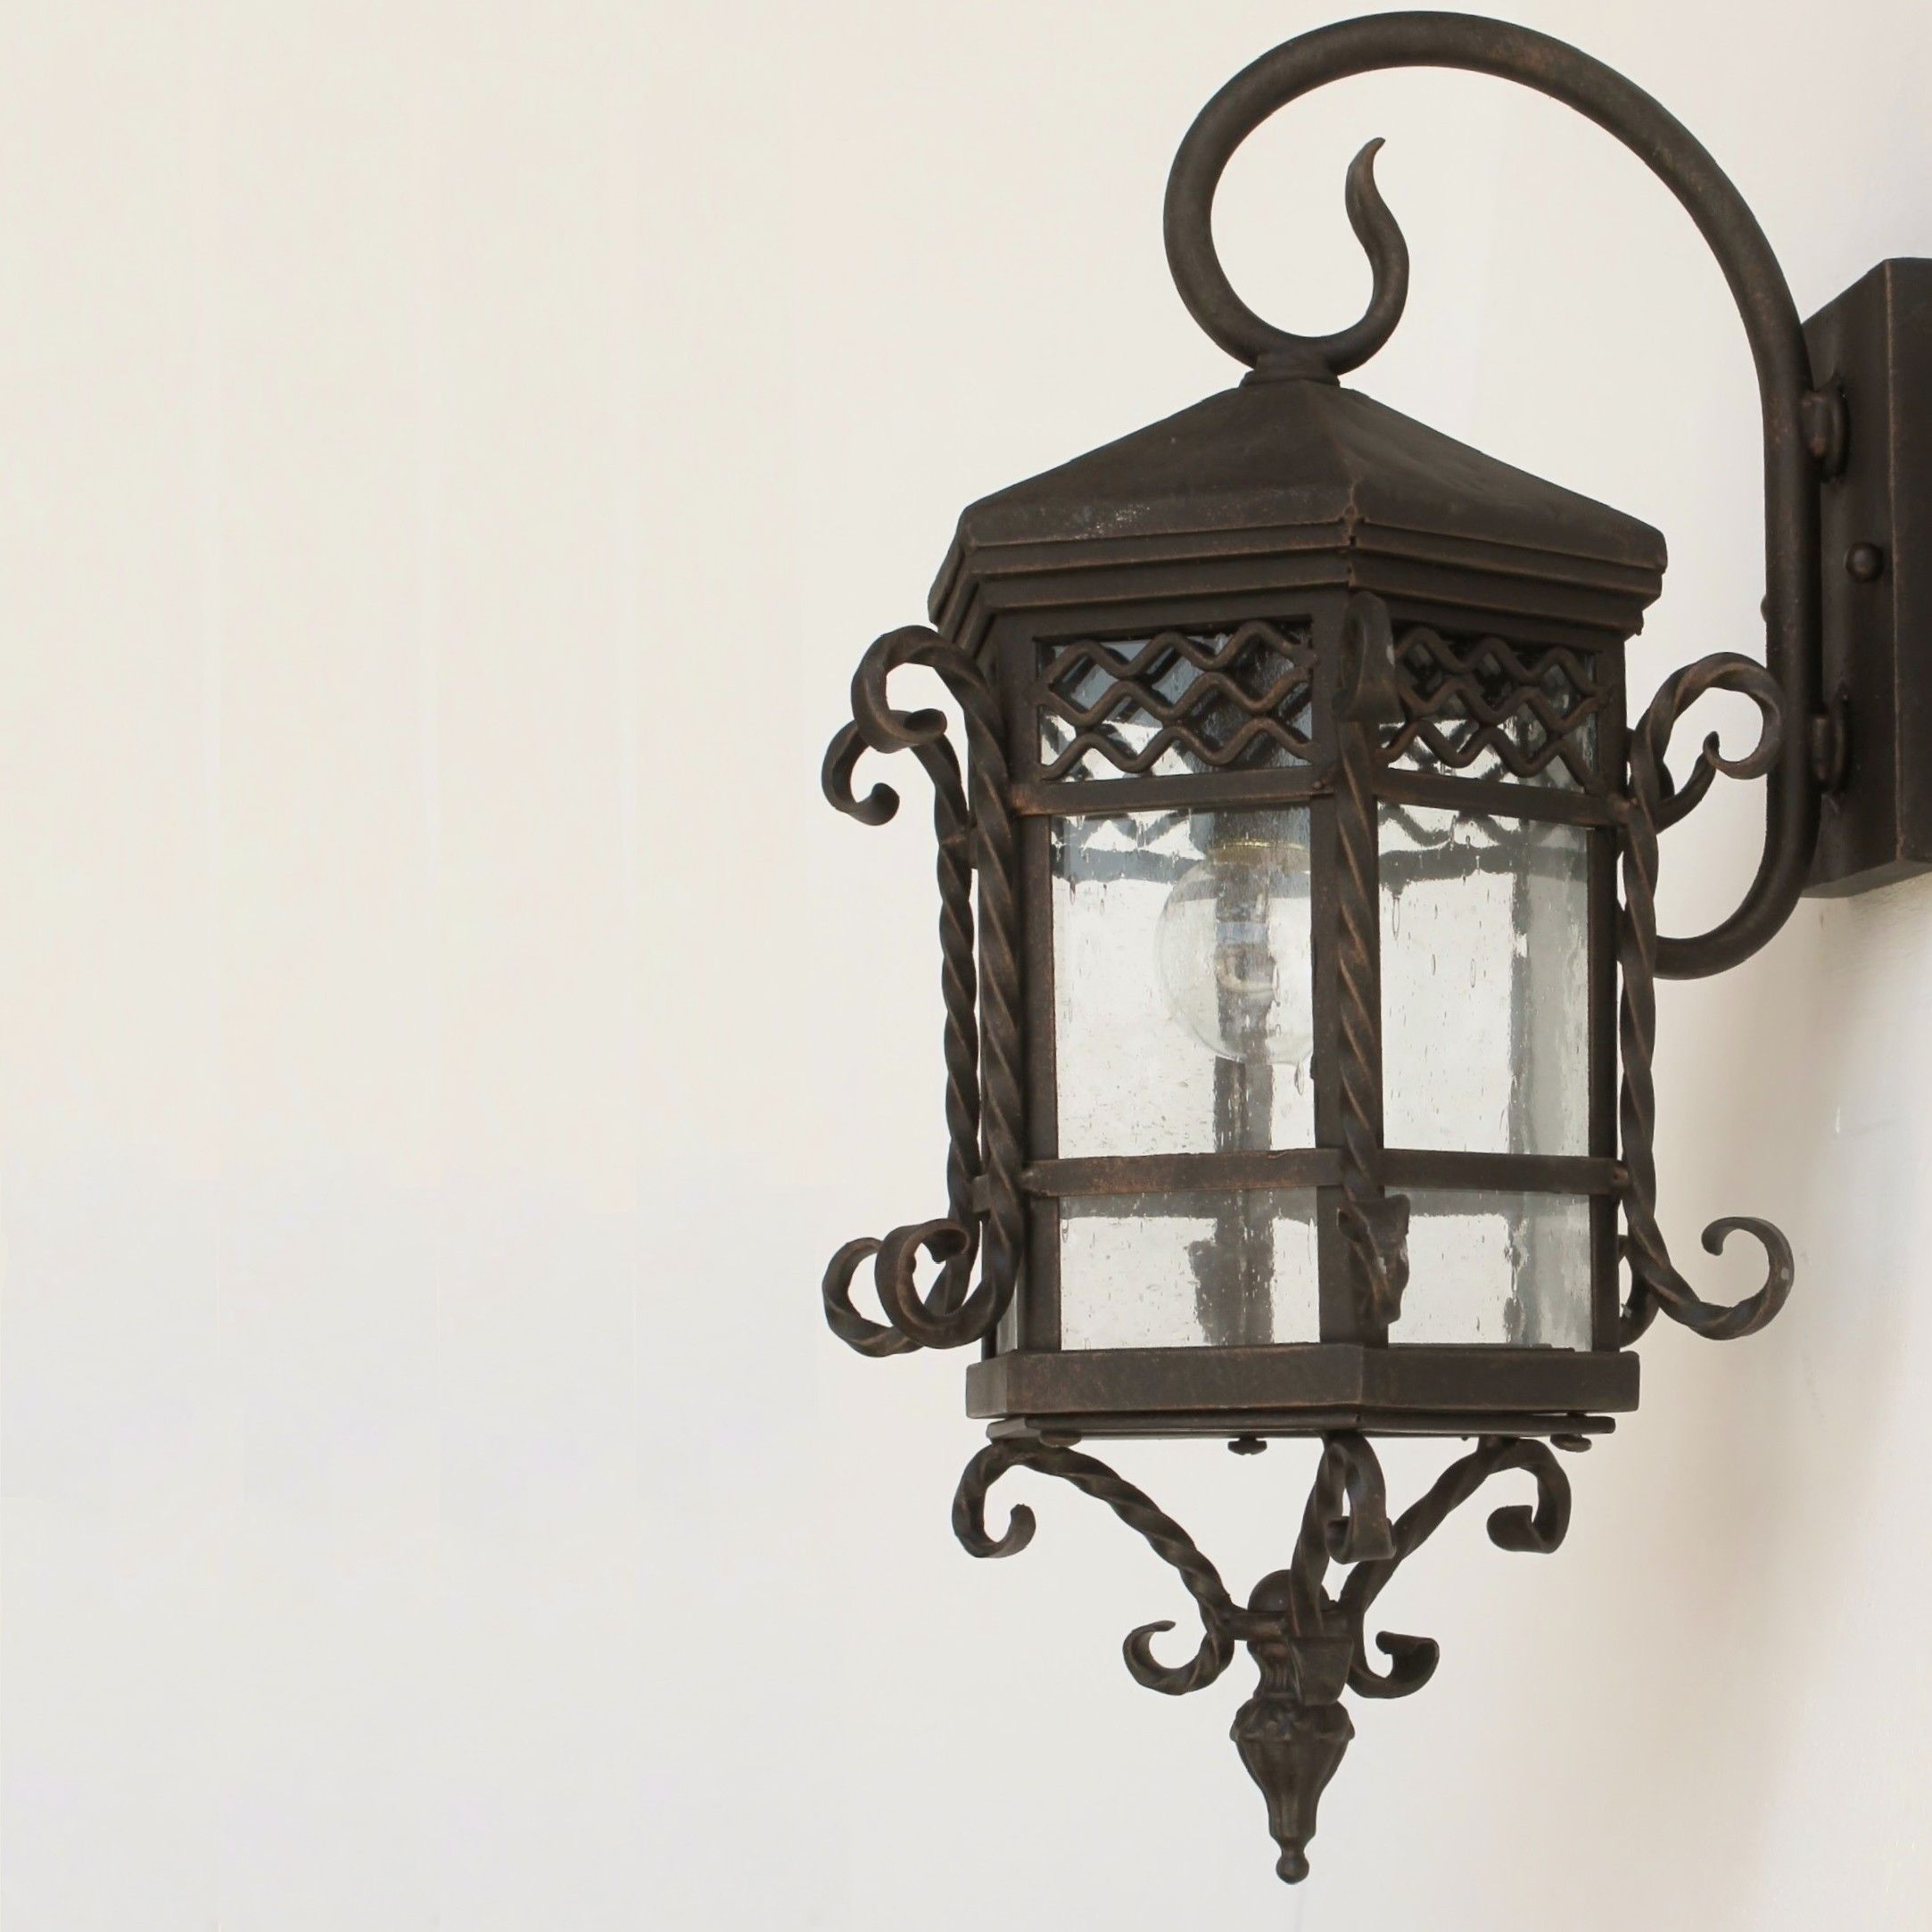 Spanish revival colonial wall lantern lighting for Outdoor colonial lighting